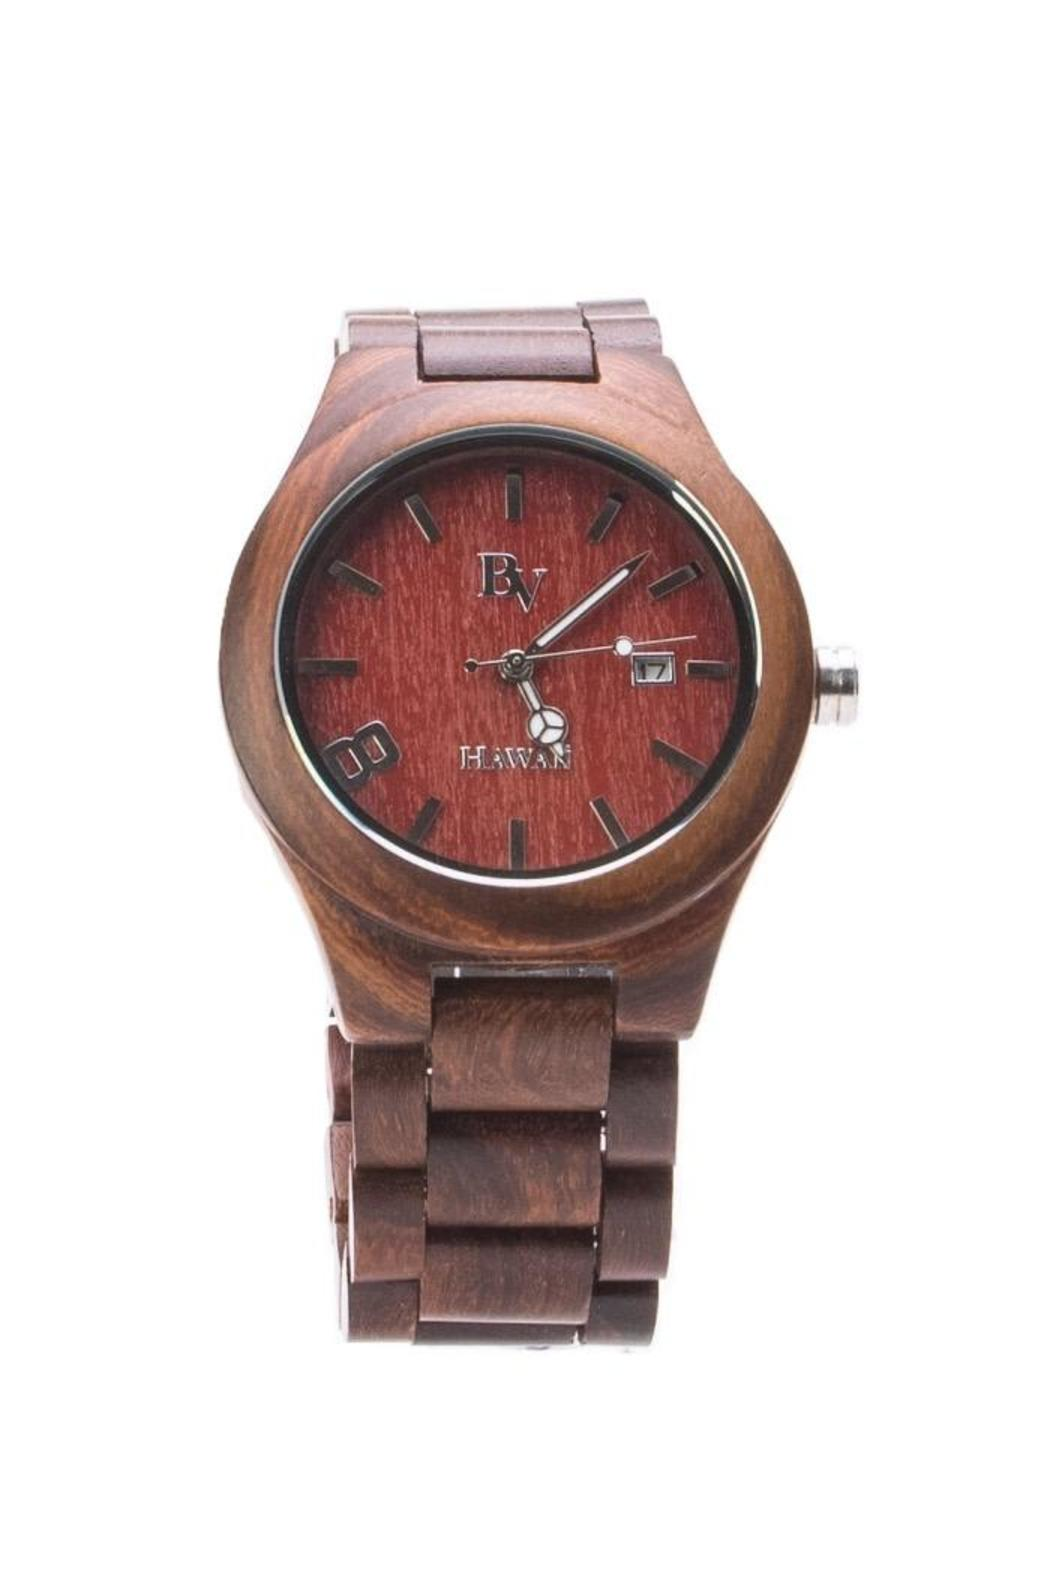 bamboo fashion shell wood watches category belt watch gnart store men folding s brand for product wooden sandalwood button table movement core case certificate material genuine ce quartz